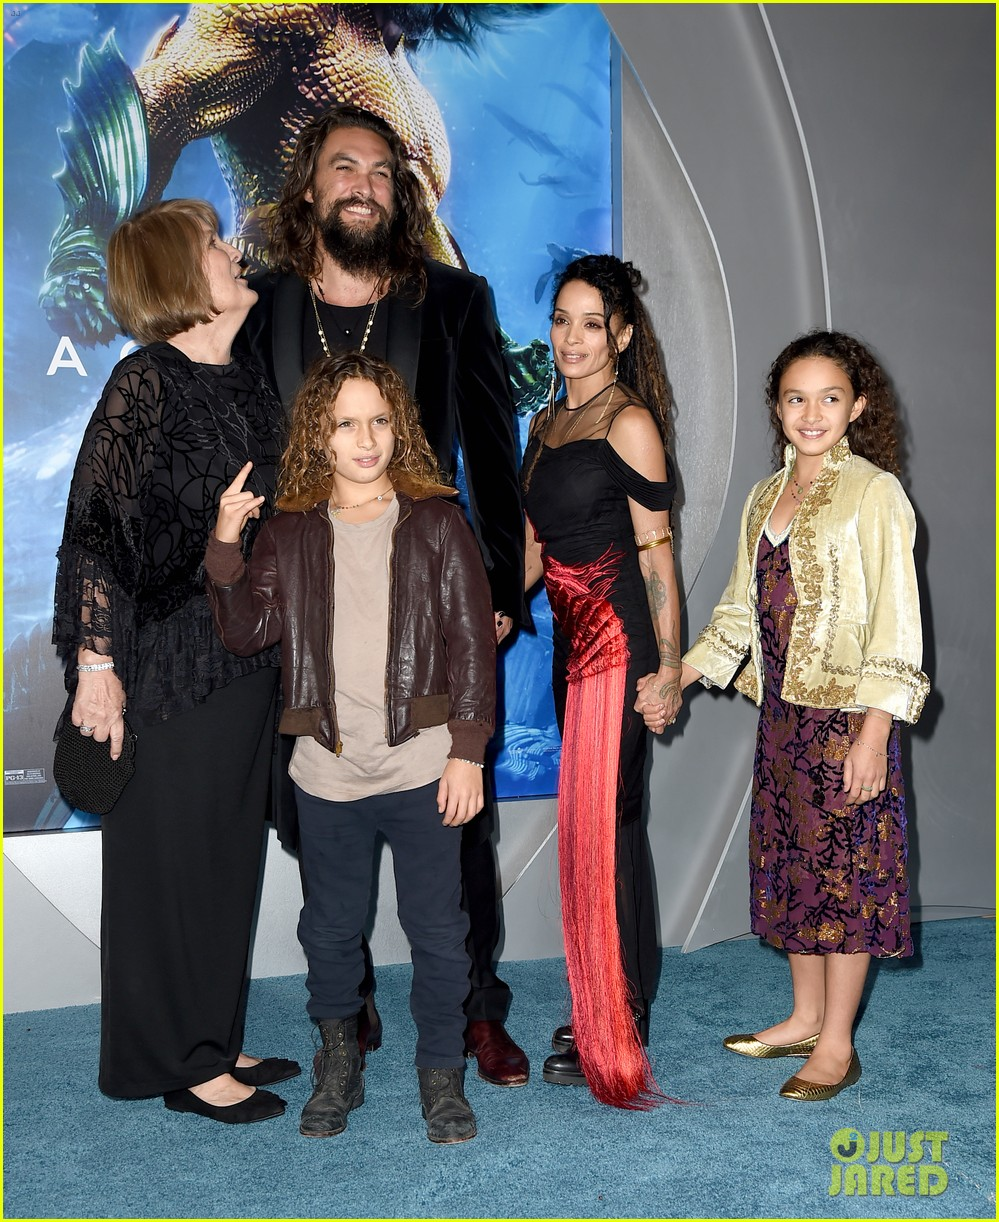 Jason Momoa Takes A Stroll With His Kids: Jason Momoa Gets Support From Wife Lisa Bonet, Mom & Kids